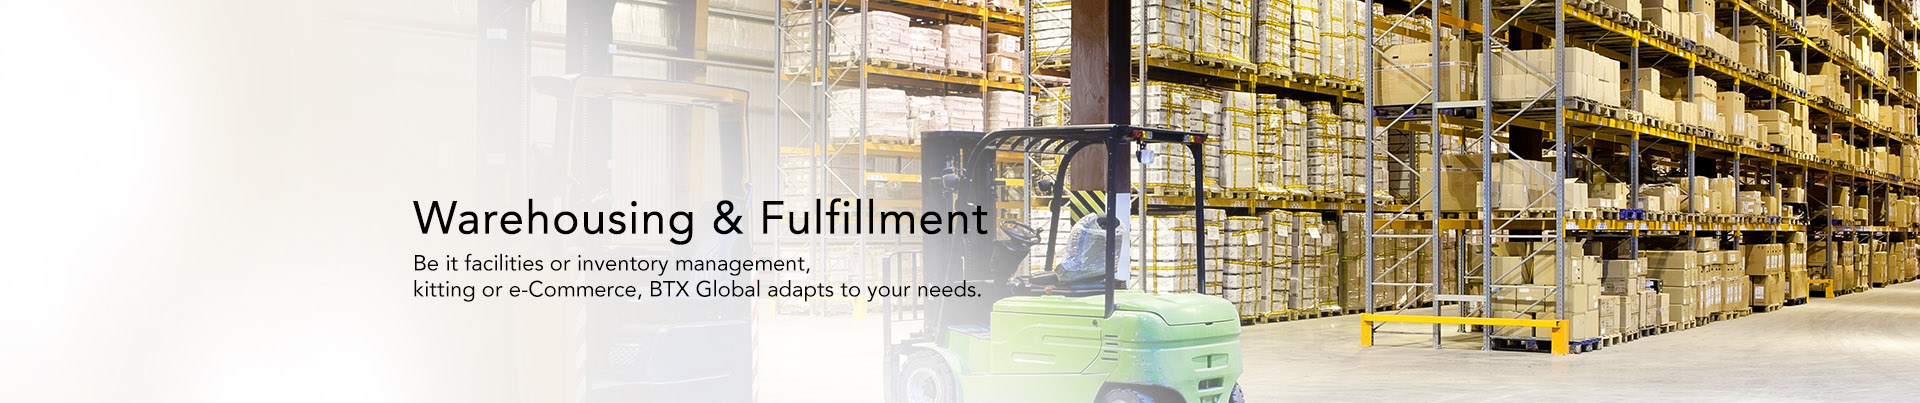 Warehousing & Fulfillment at BTX Global Logistics